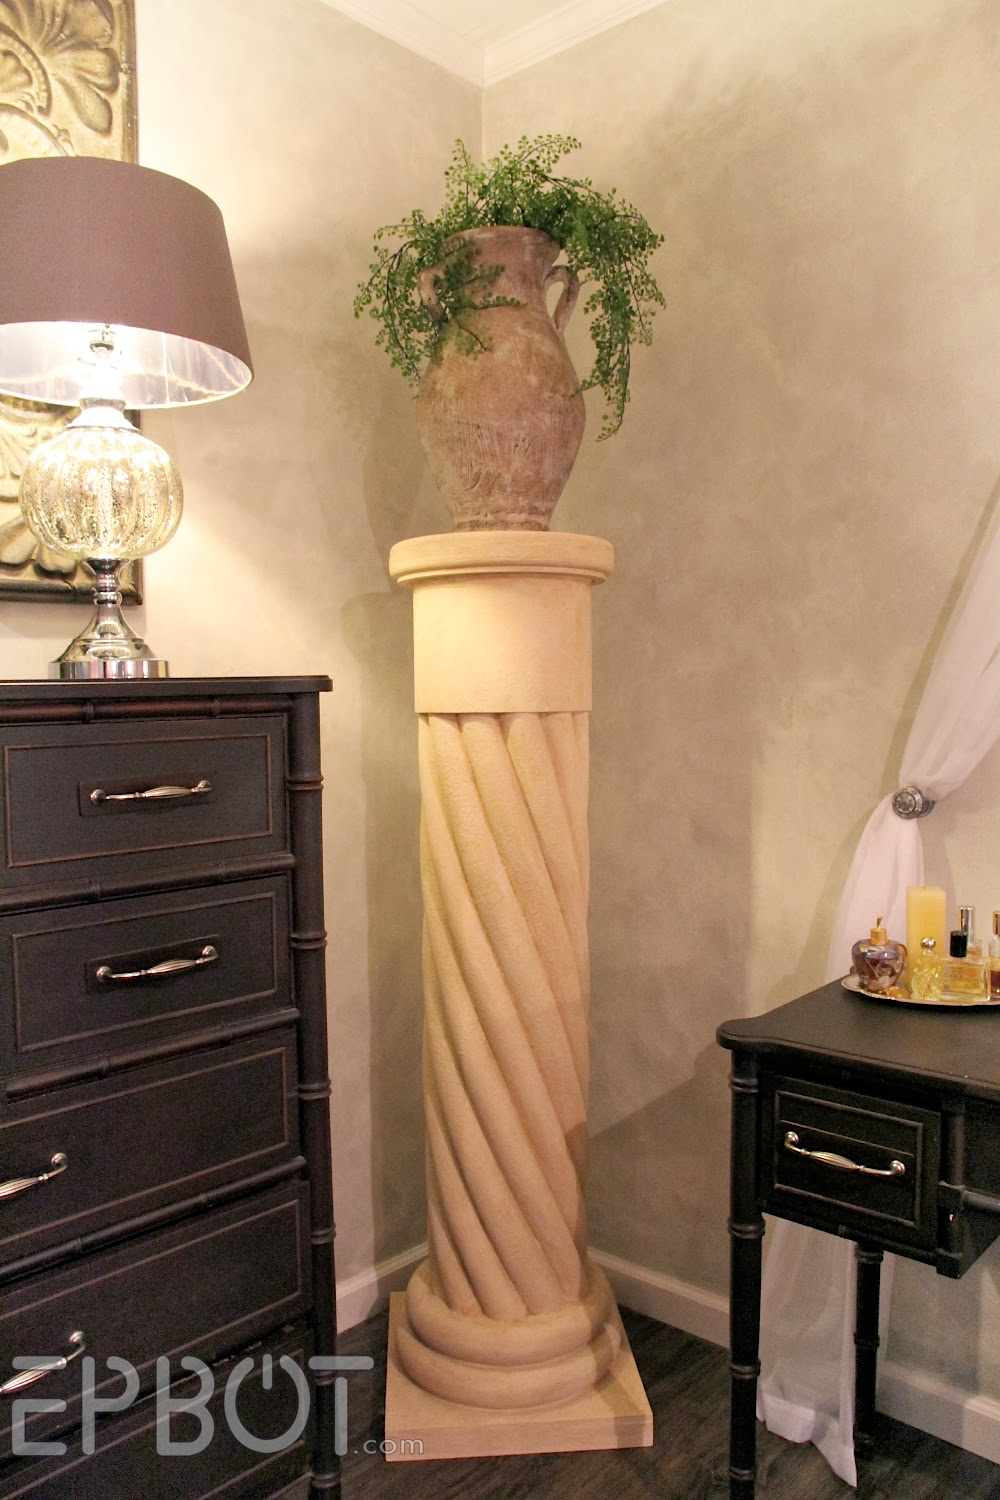 EPBOT Make Your Own Stone Decorative Column With